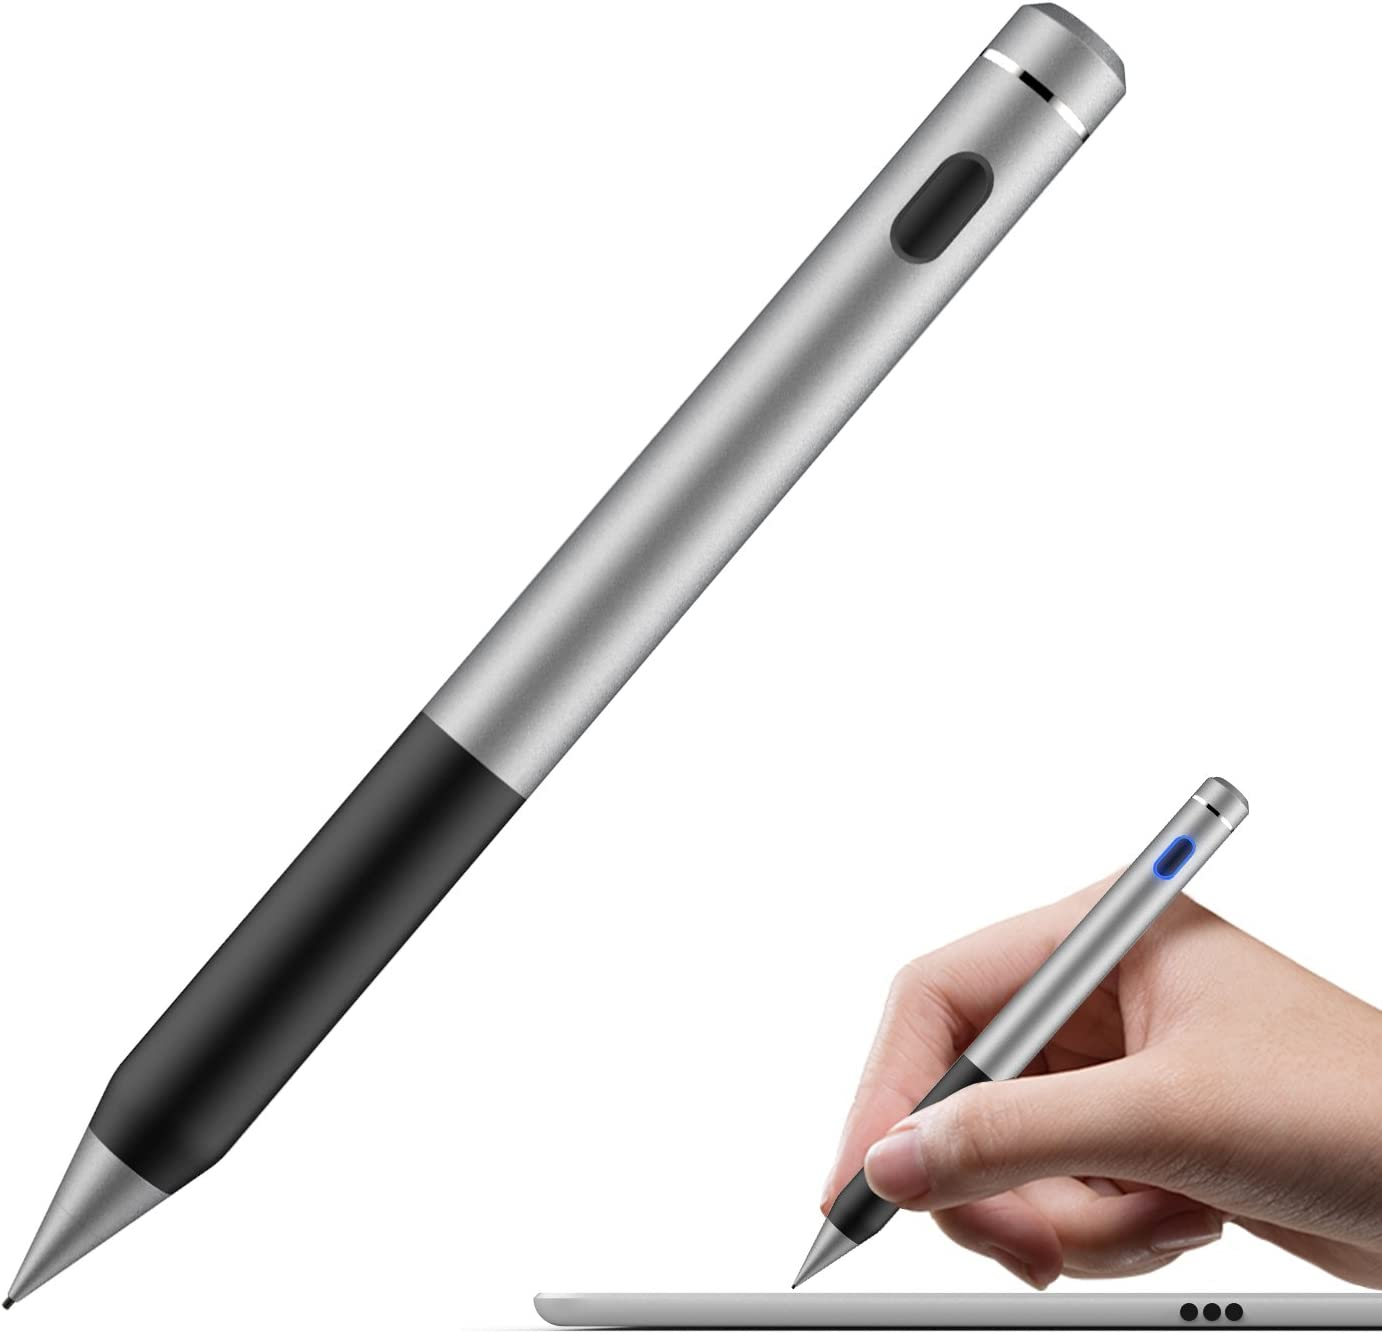 MoKo Universal Active Stylus Pen, Capacitive Fine Point Touch Screen Tablets Ditgial Pencil Compatible Apple iPad, Mini/Air/Pro, iPhone, Samsung Galaxy, Touchscreen Devices & Smartphones - Dark Gray